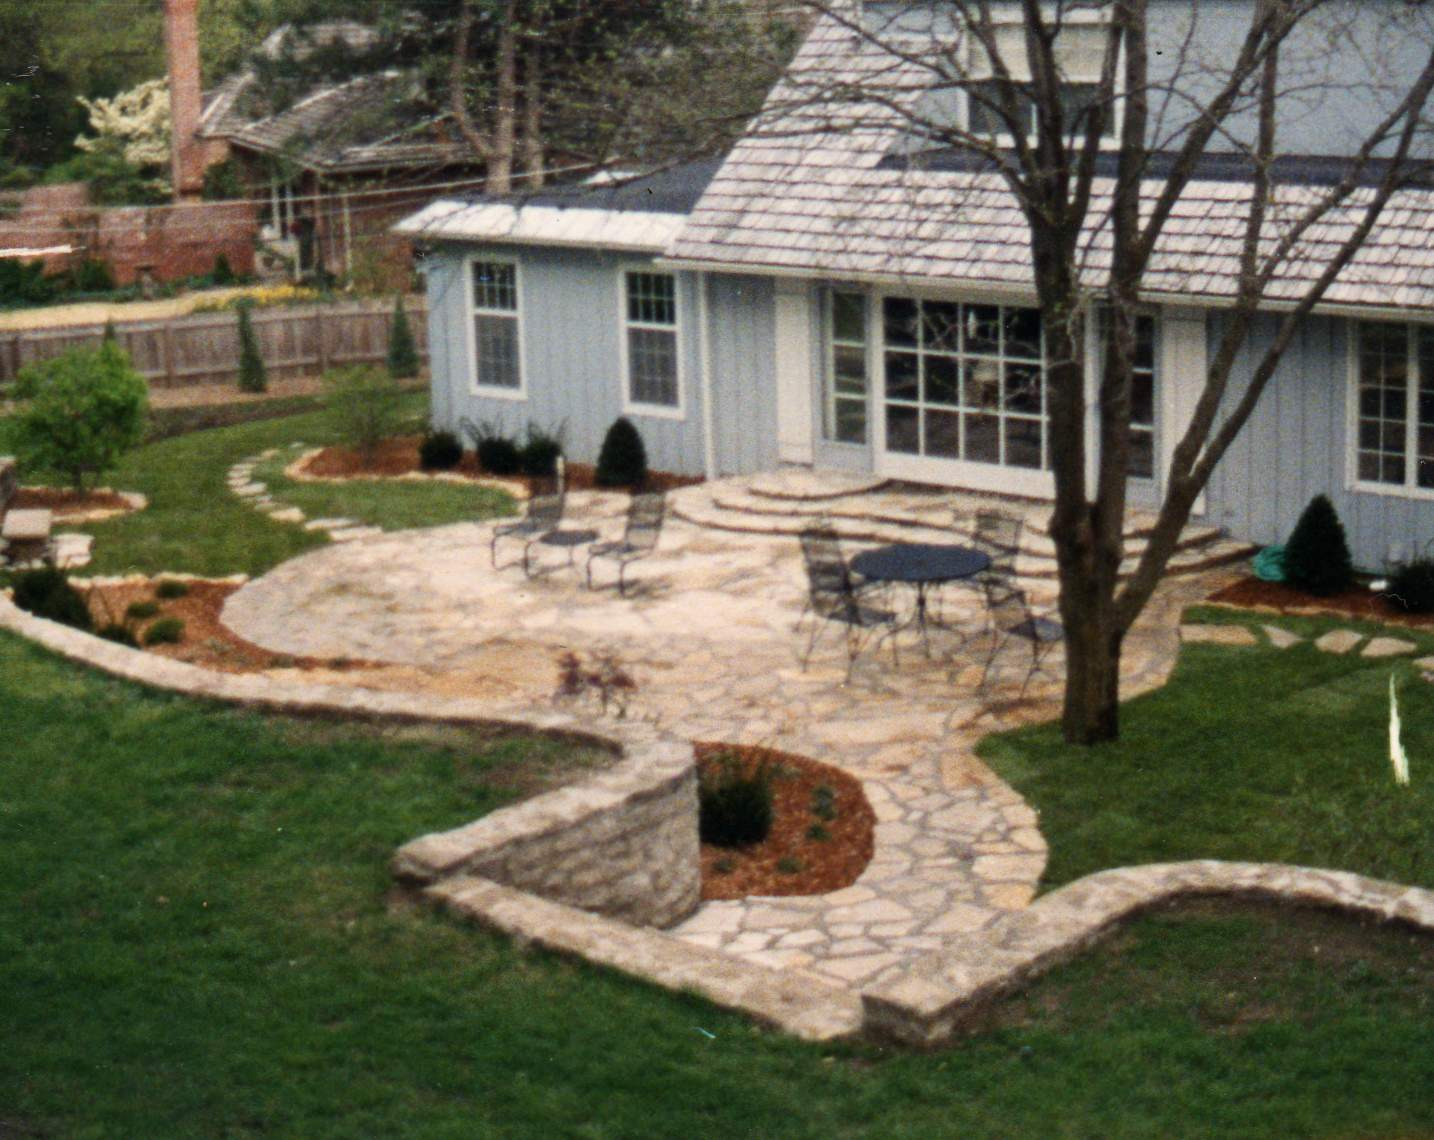 Inspirational Mission Hills Outdoor Living Flagstone Patio Kansas City Patio Design Installation S By York Backyard Living Areas Mansfield Tx Backyard Living Areas outdoor Backyard Living Area